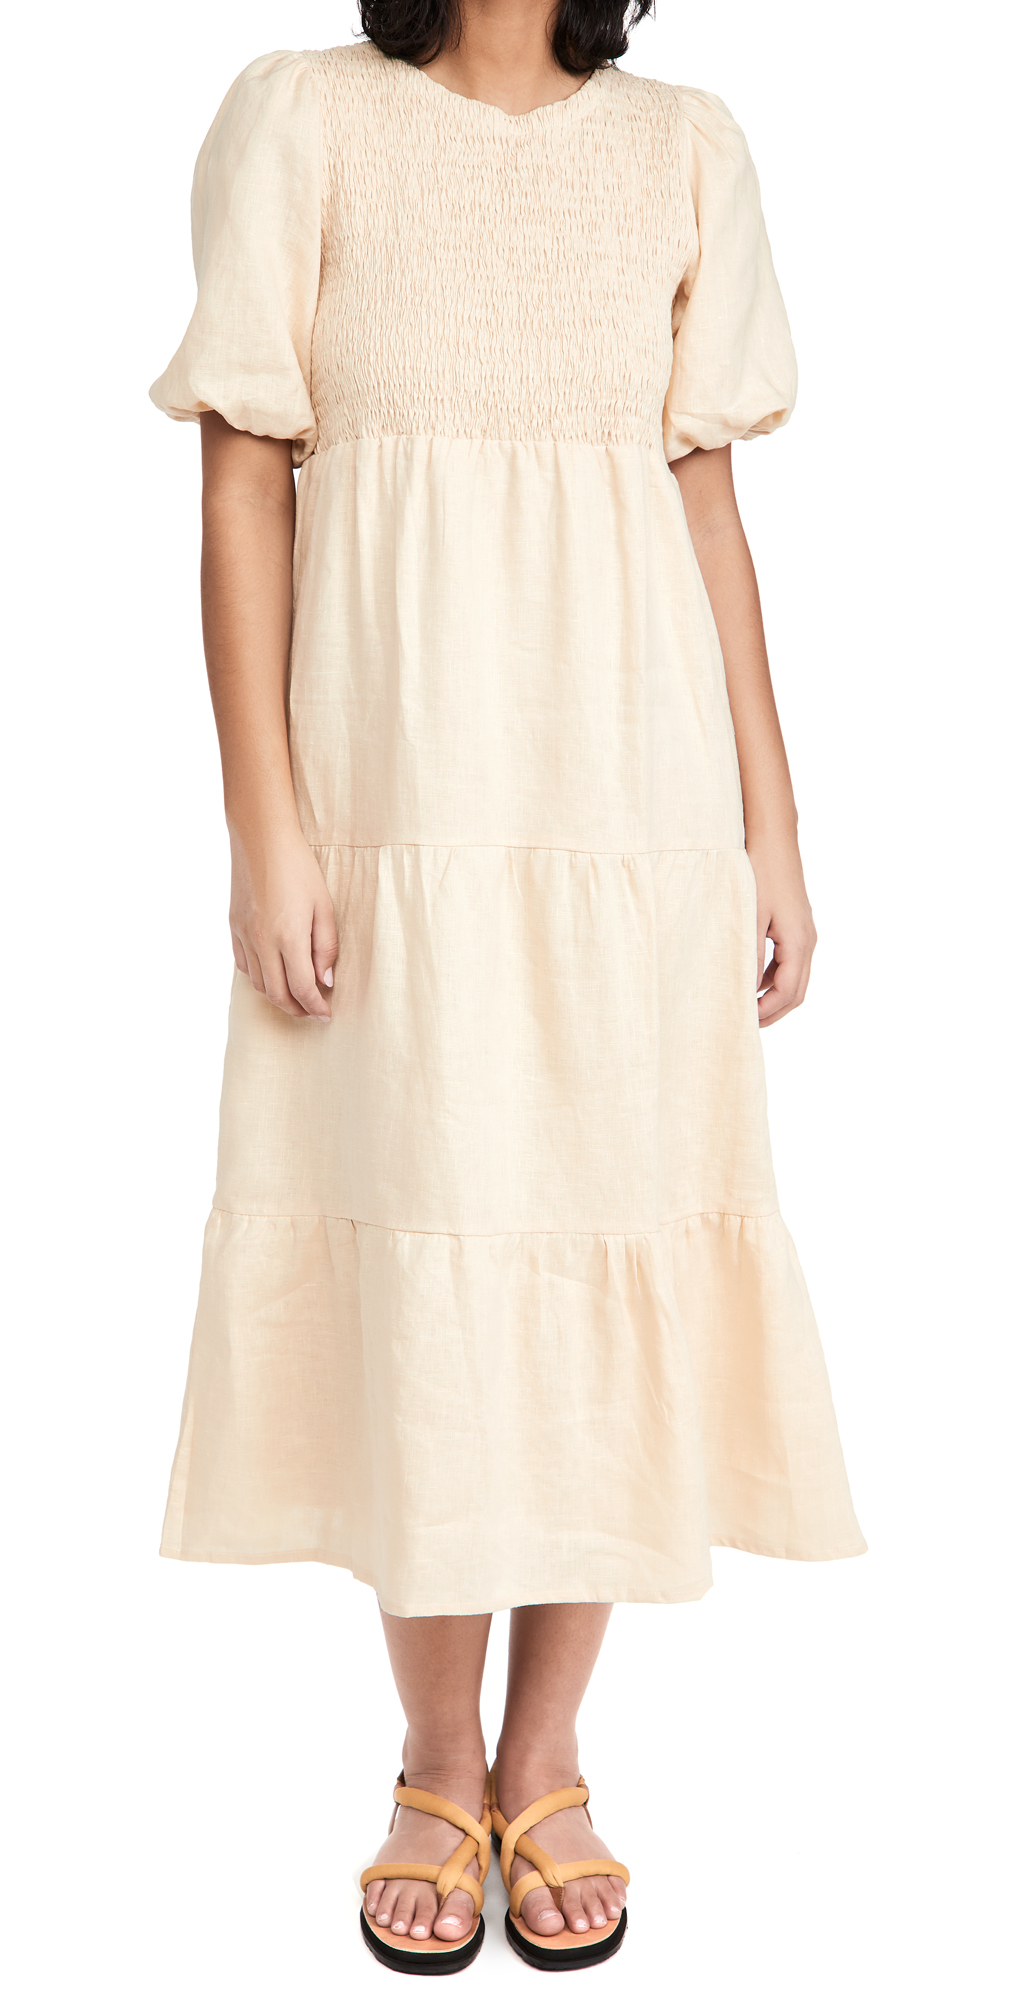 FAITHFULL THE BRAND Alberte Dress